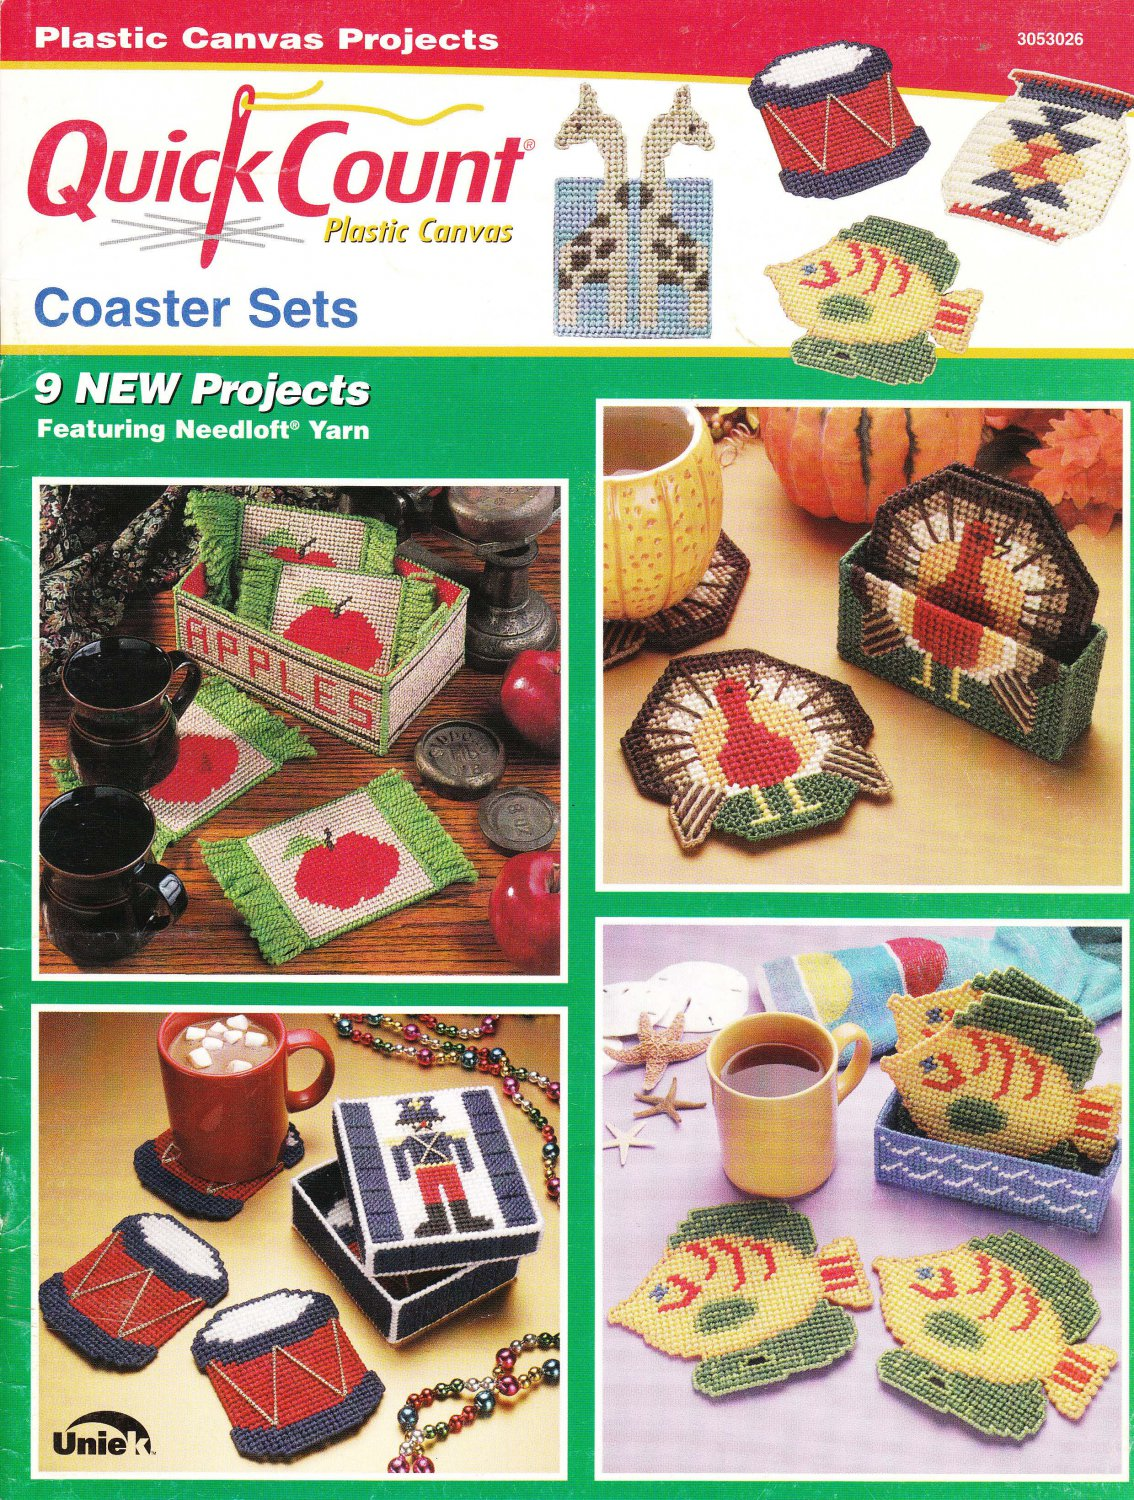 SOLD! Quick Count Plastic Canvas Projects Coaster Sets Pattern Booklet #3053026